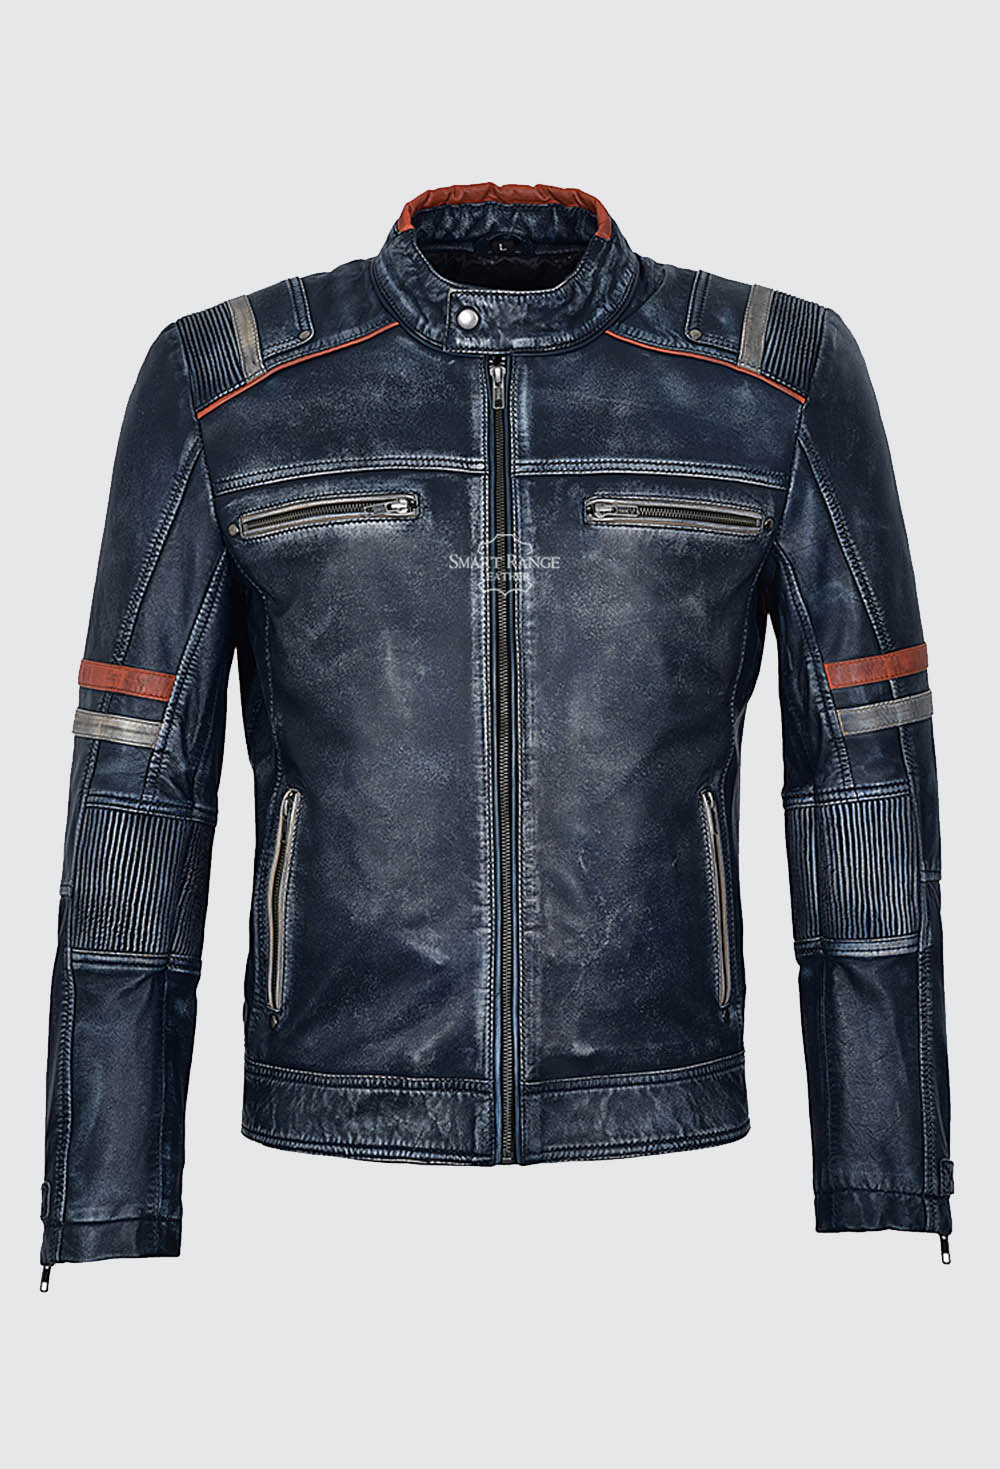 Men's Biker leather jackets, Vintage distressed leather jackets